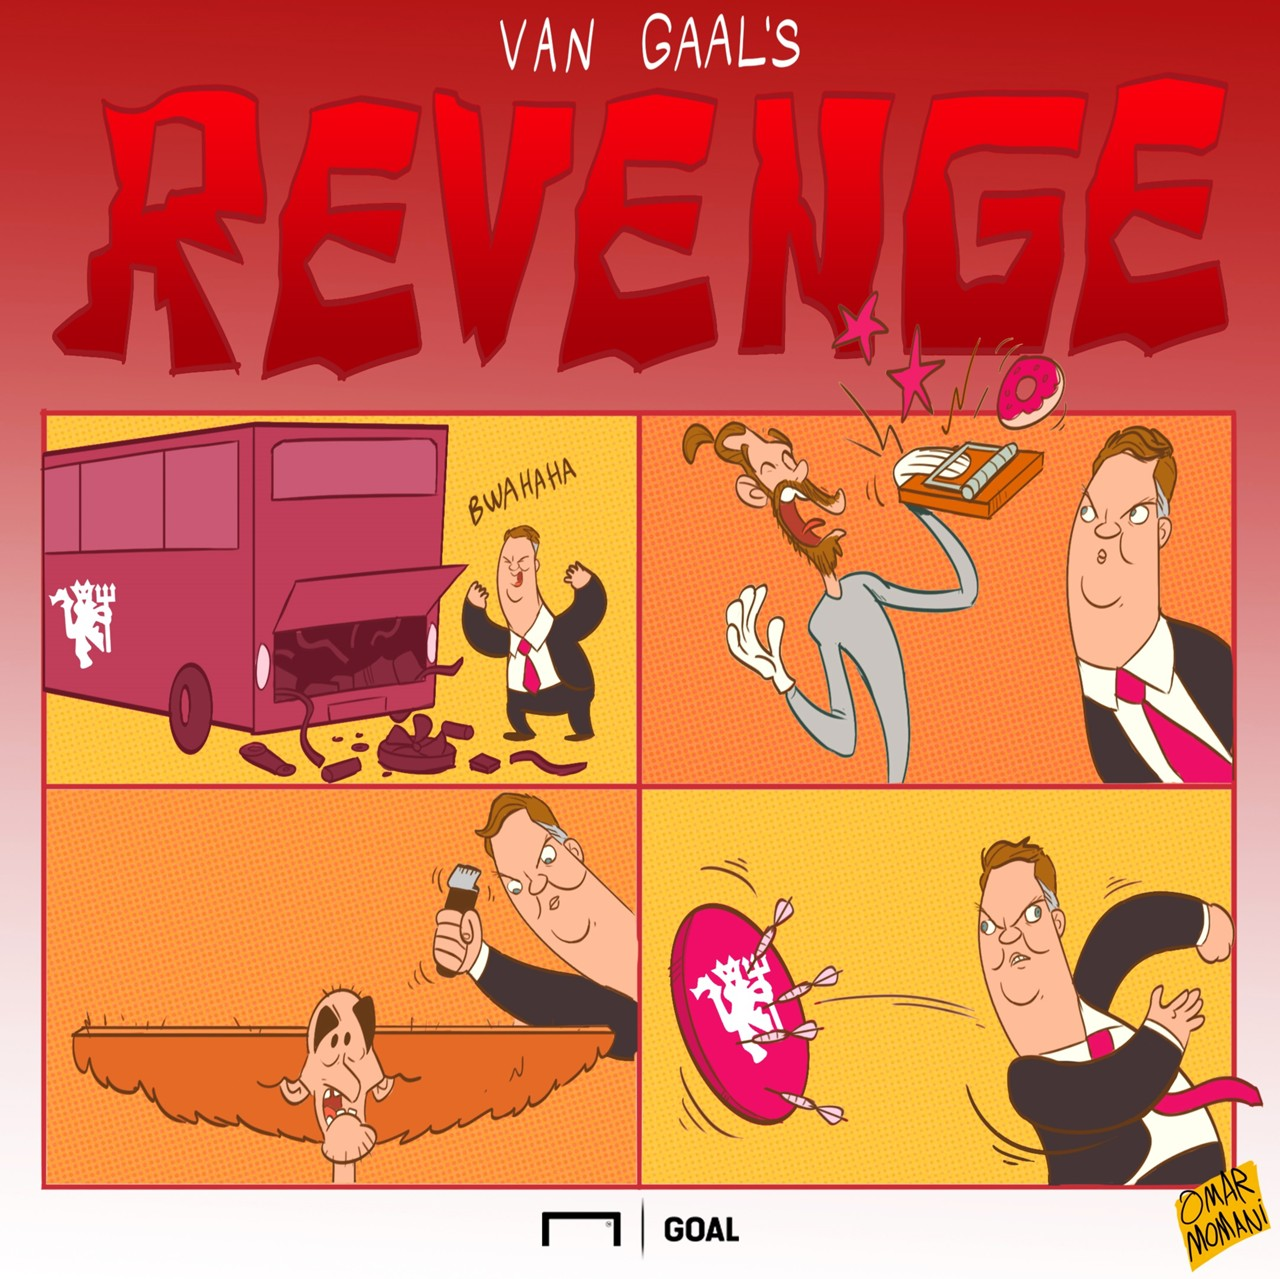 Cartoon van Gaal